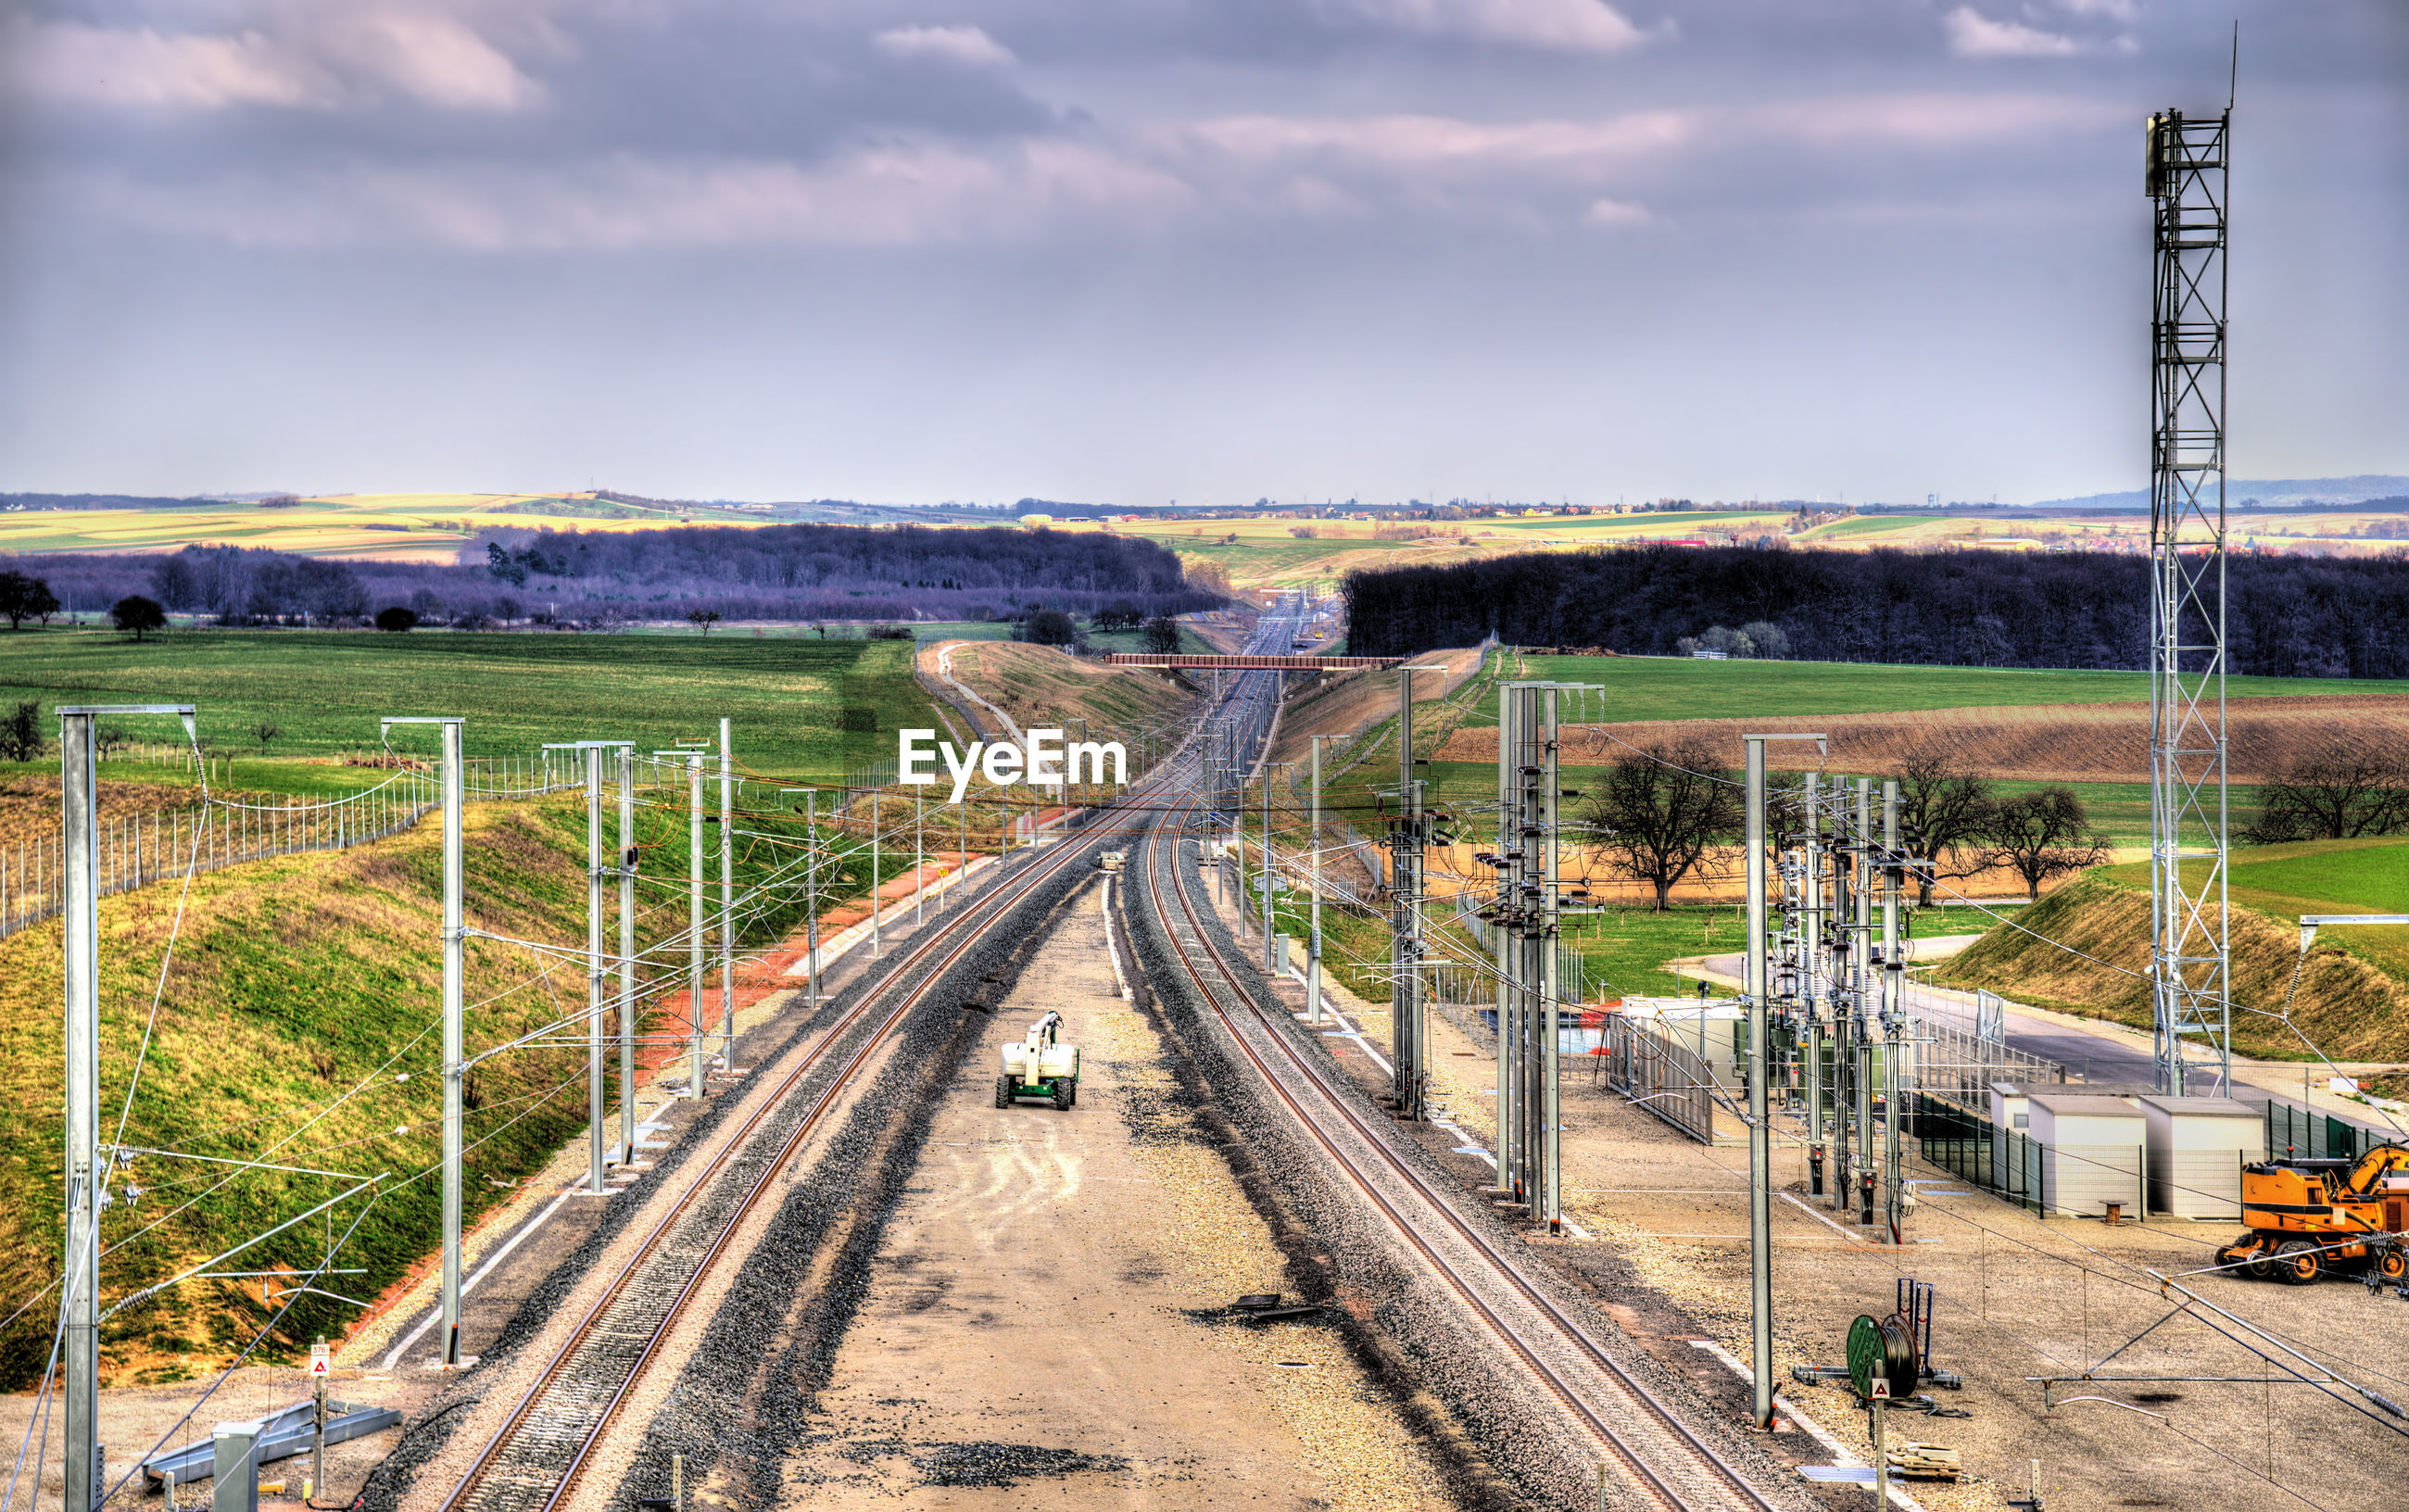 HIGH ANGLE VIEW OF RAILROAD TRACKS AMIDST LANDSCAPE AGAINST SKY